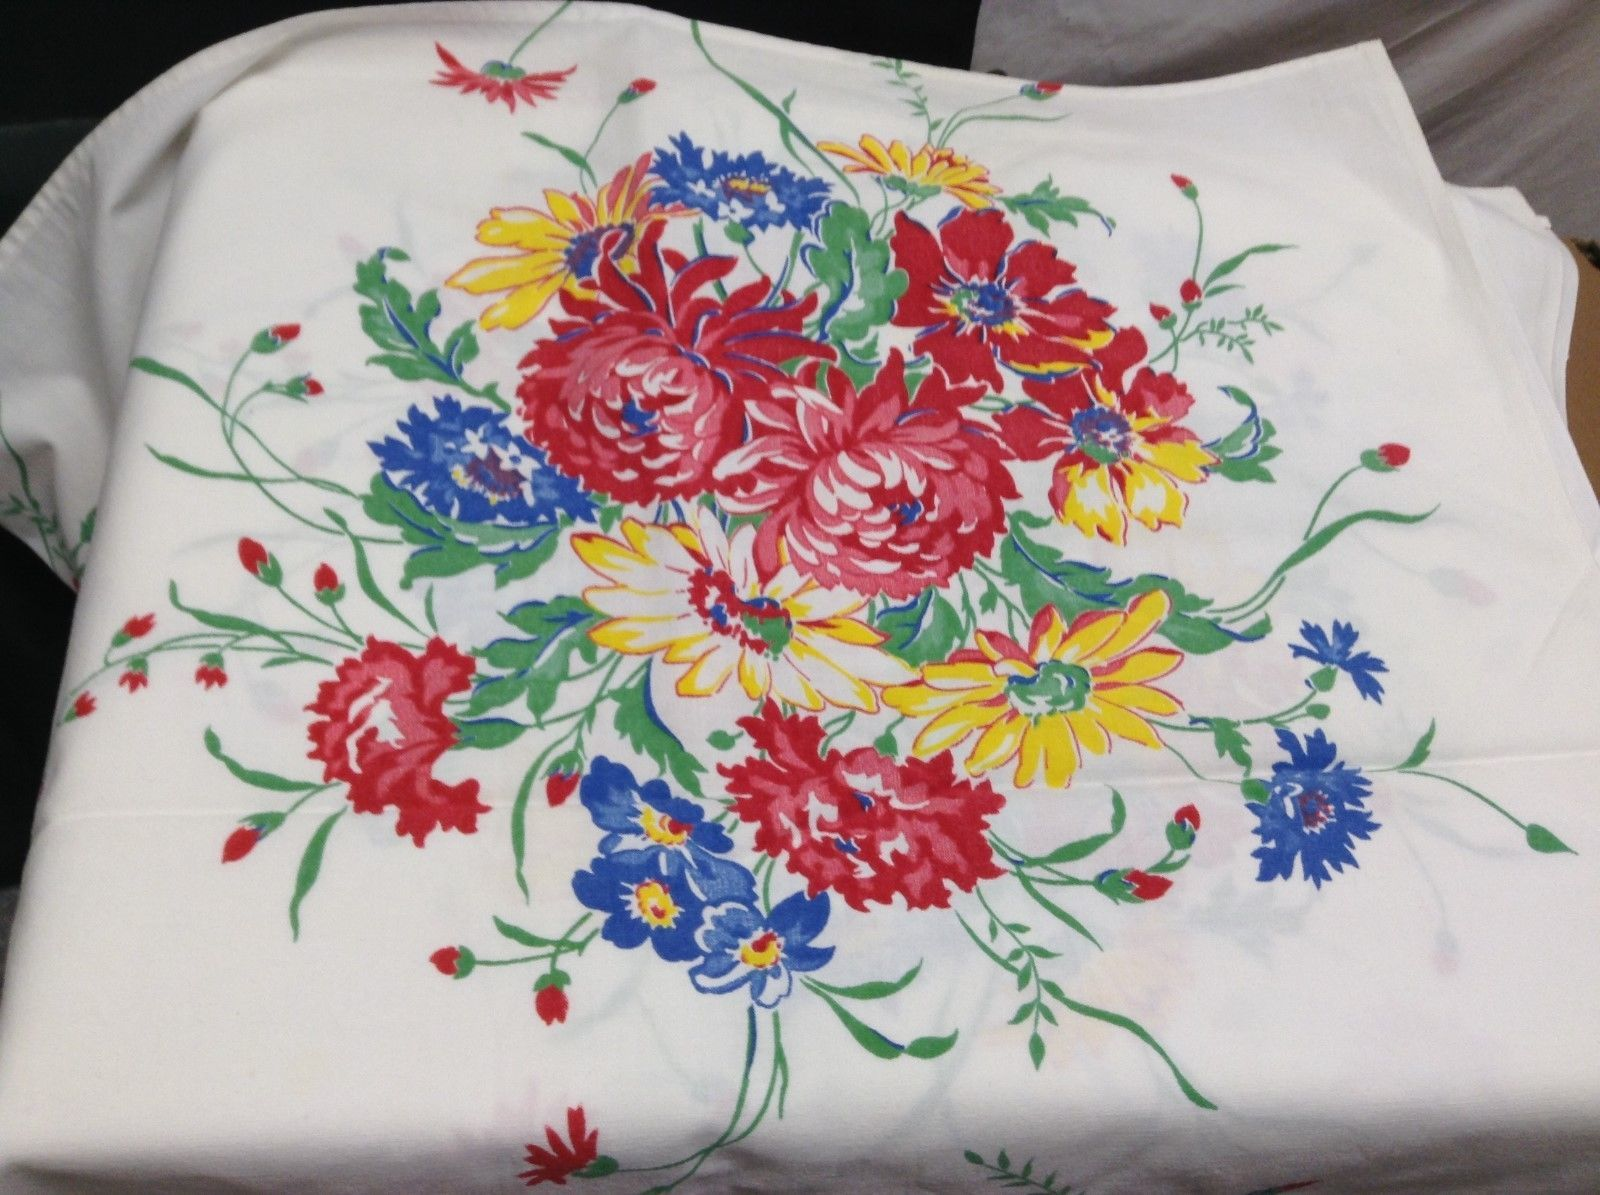 Vintage White Tablecloth w Bright Floral Pattern